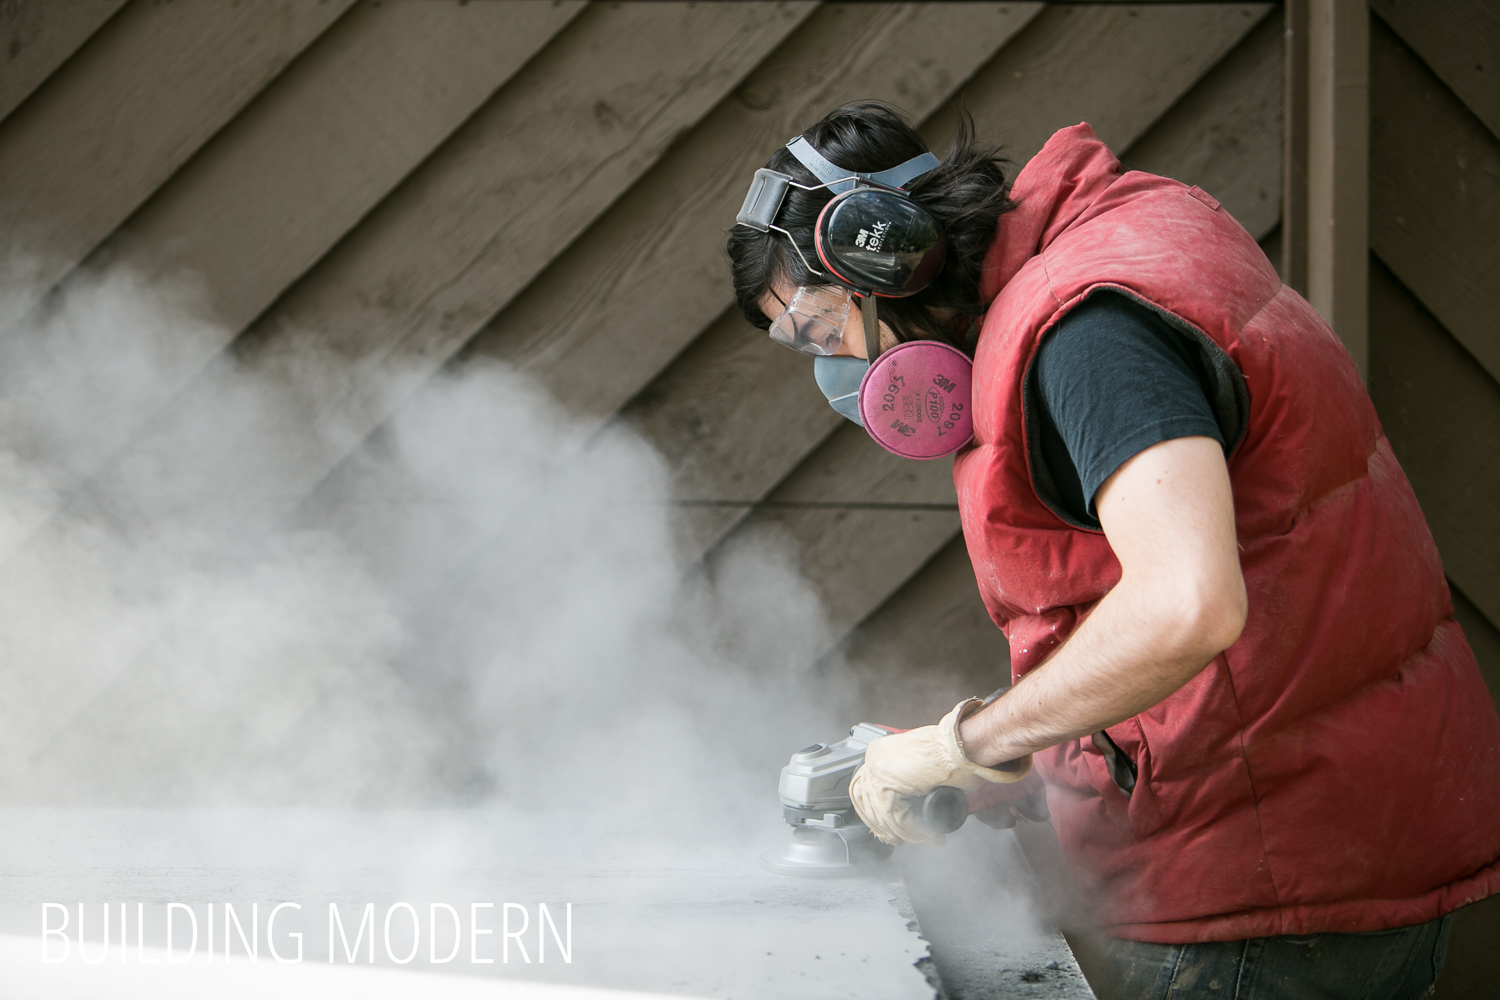 Using an angle grinder on concrete countertops